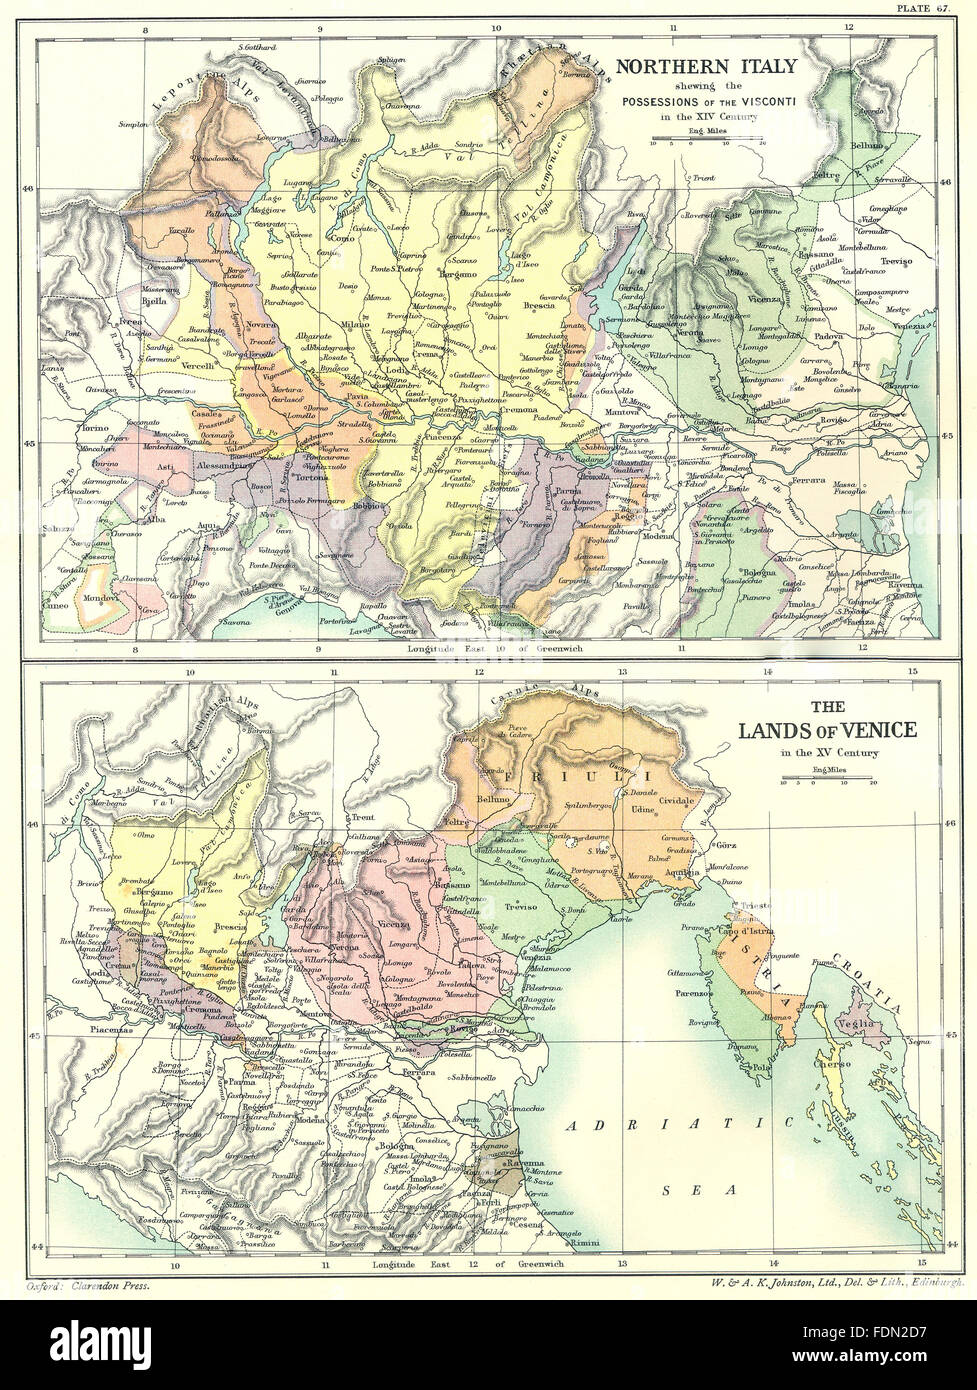 Italy northern possessions of visconti xiv century lands venice italy northern possessions of visconti xiv century lands venice 15c 1903 map gumiabroncs Image collections